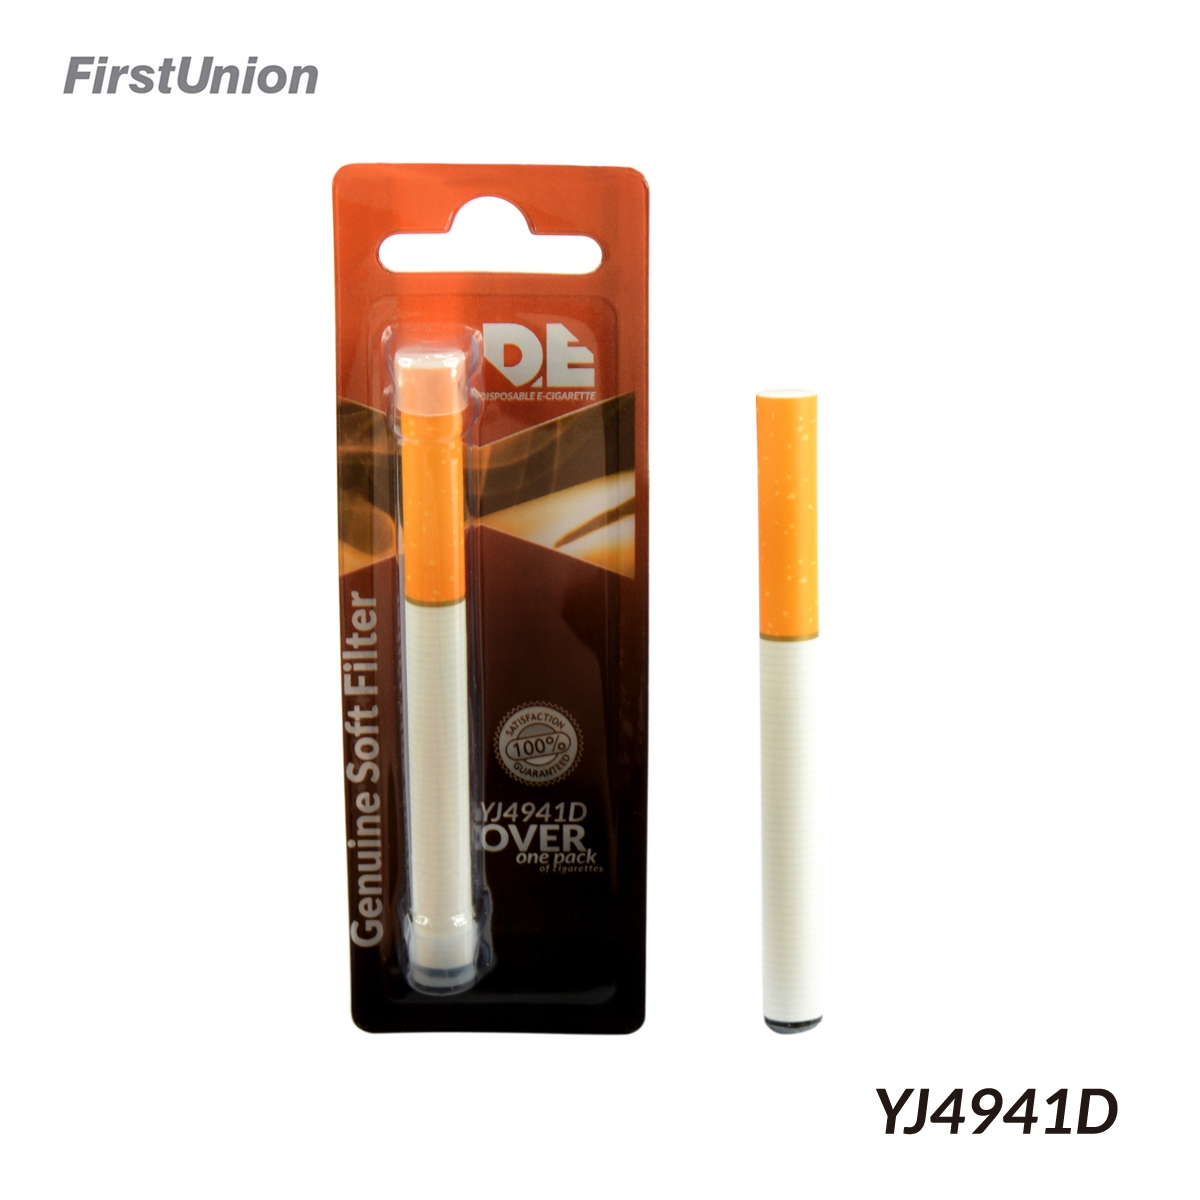 Firstunion 2014 cheap disposable electronic cigarettes YJ4941D genuine soft filter e cigarette china